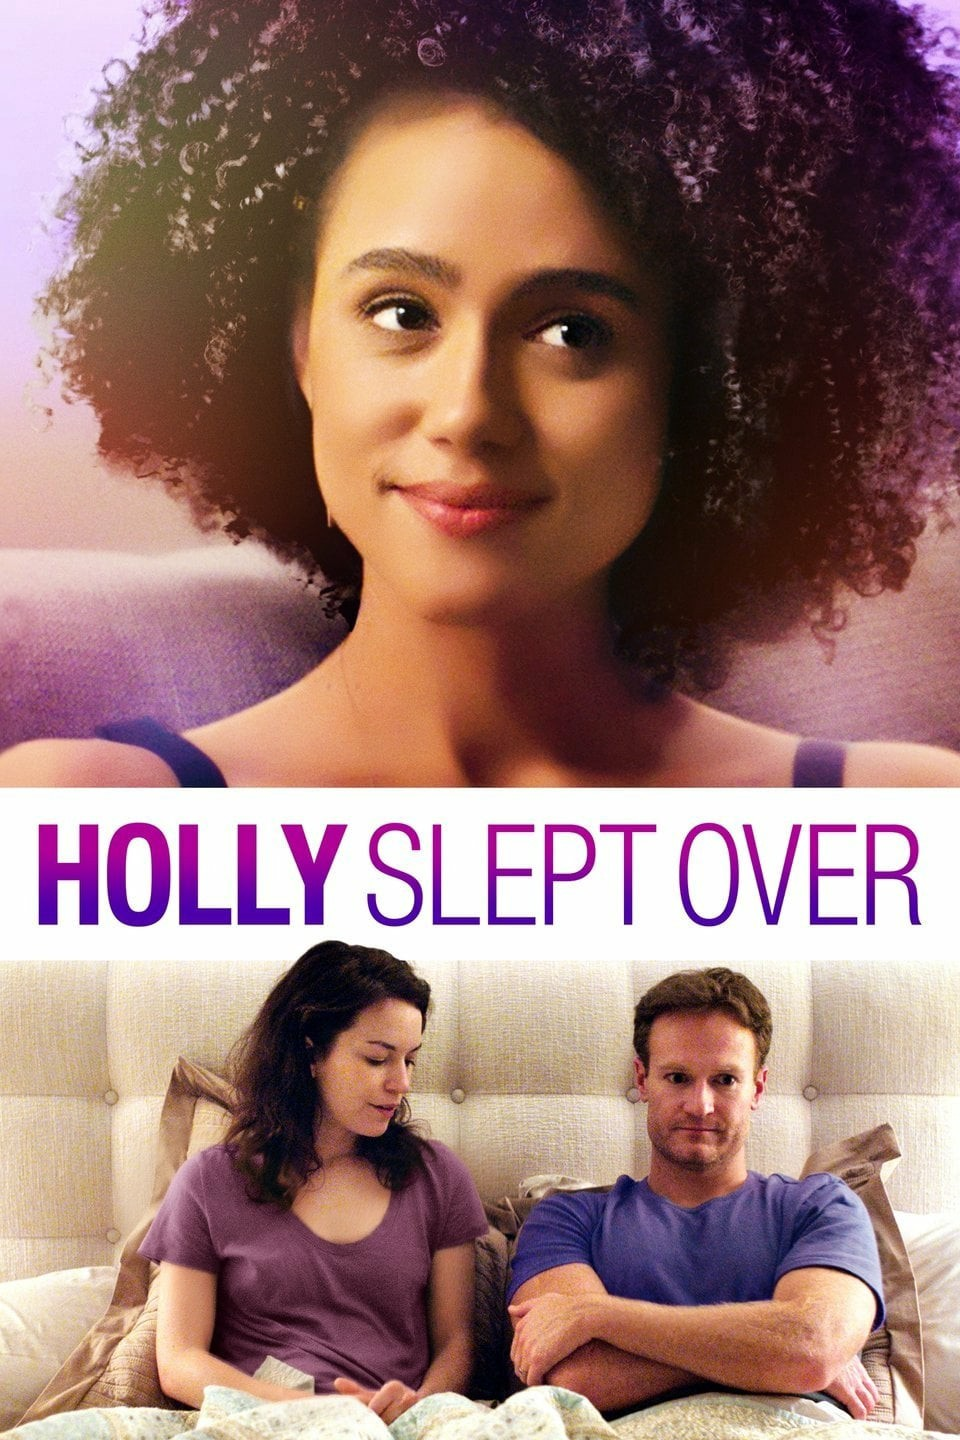 Holly Slept Over (2020) ORG Hindi Dual Audio 480p AMZN HDRip x264 ESubs 400MB